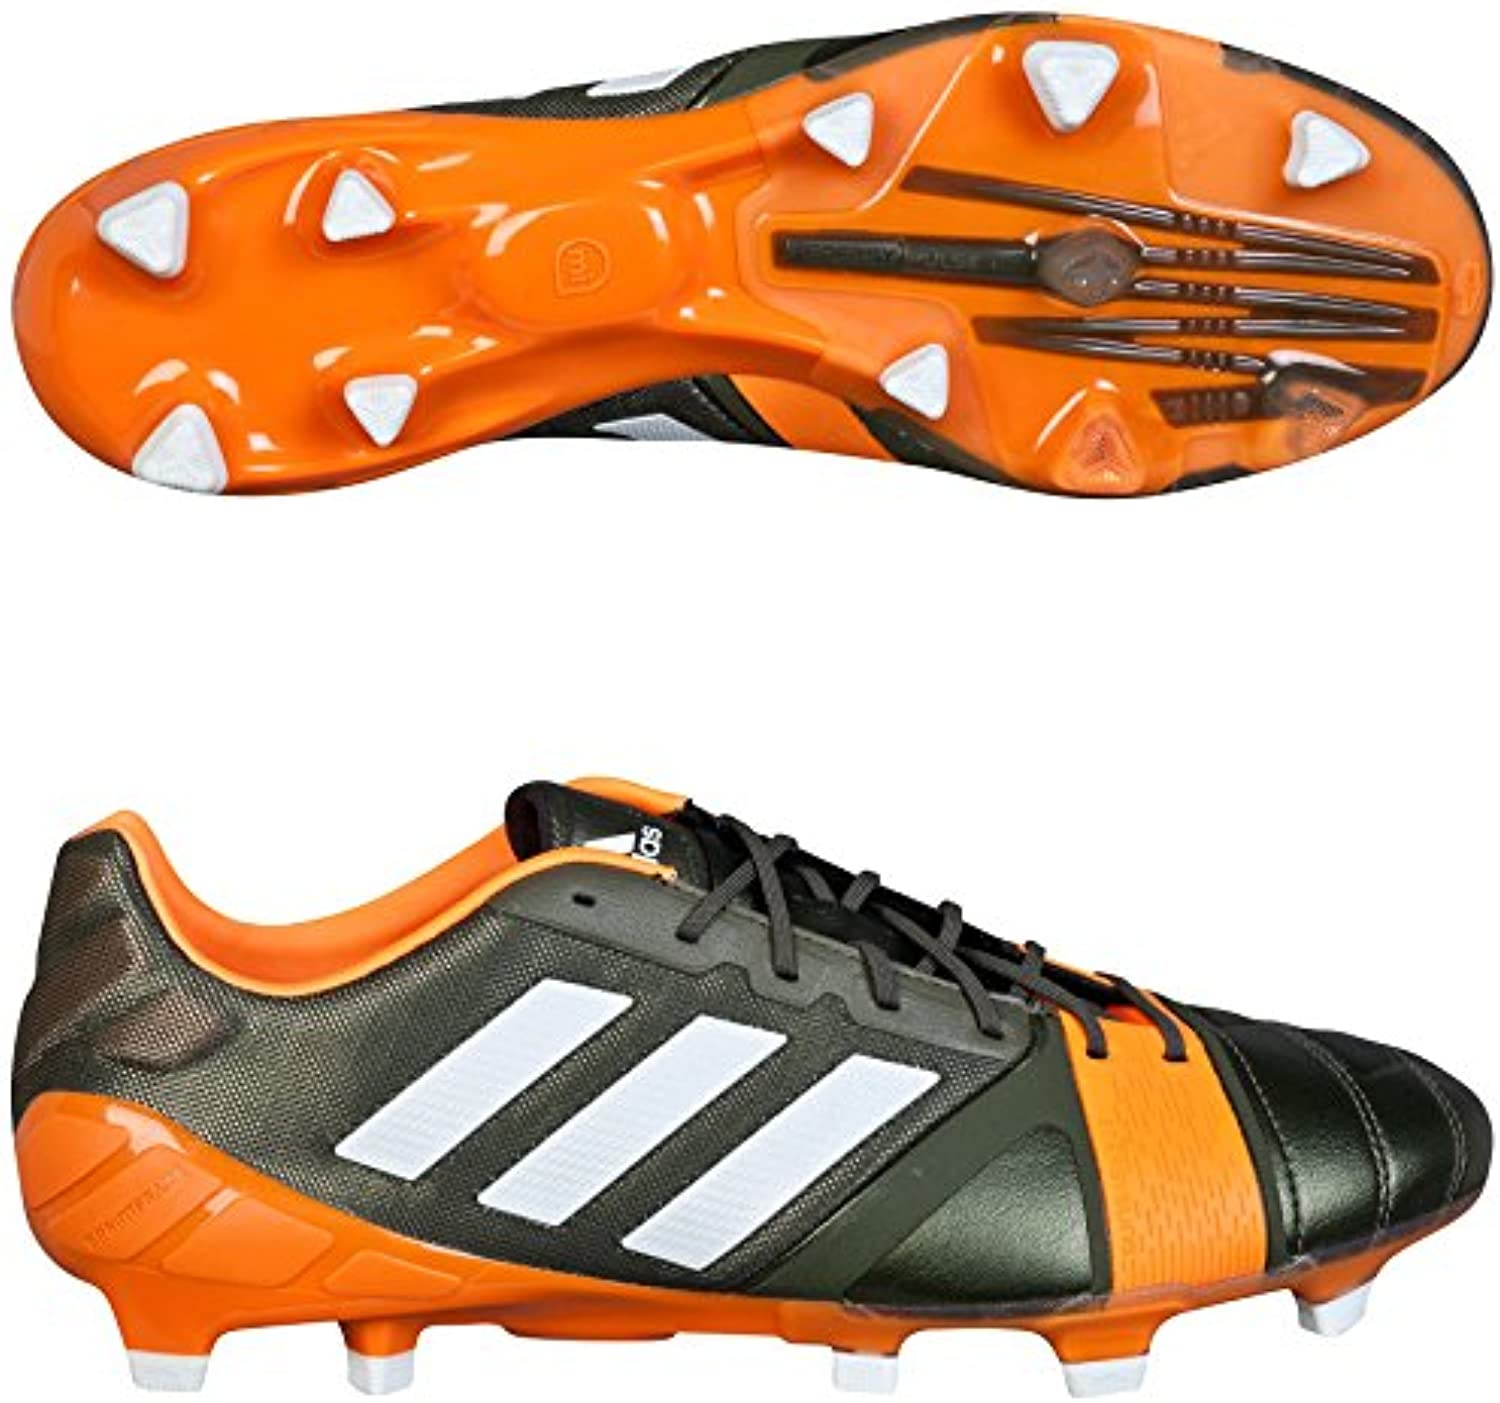 adidas Nitrocharge 1.0 TRX, color verde, talla UK-9.5